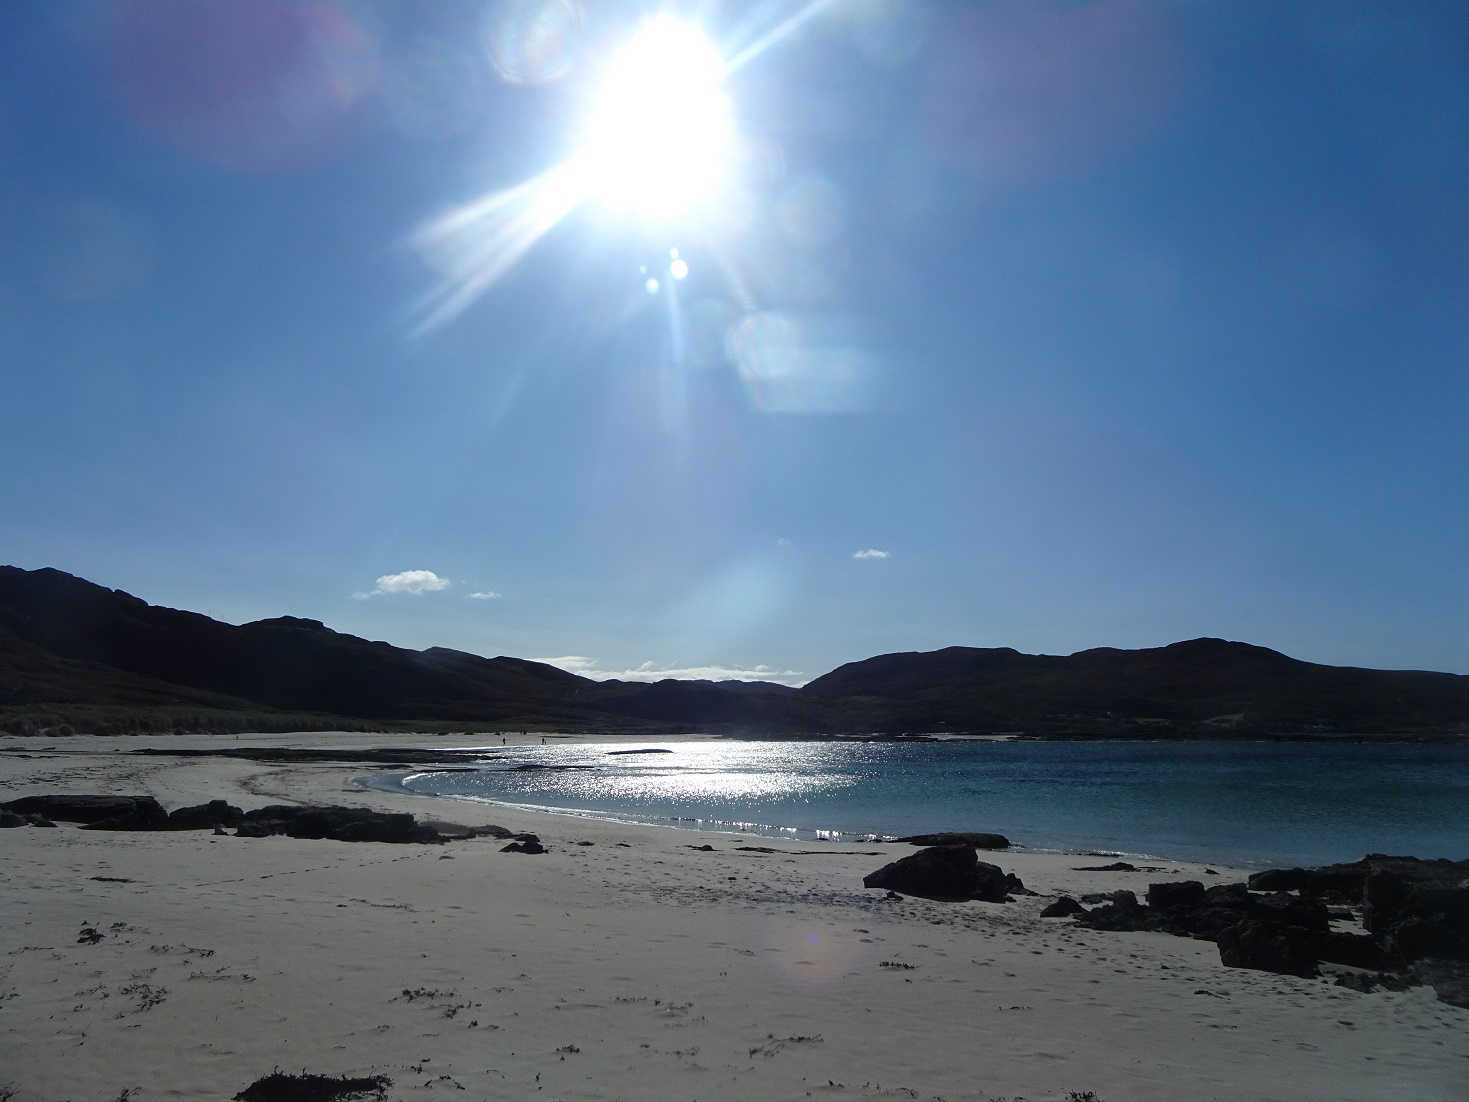 lunch spot at Sanna Beach